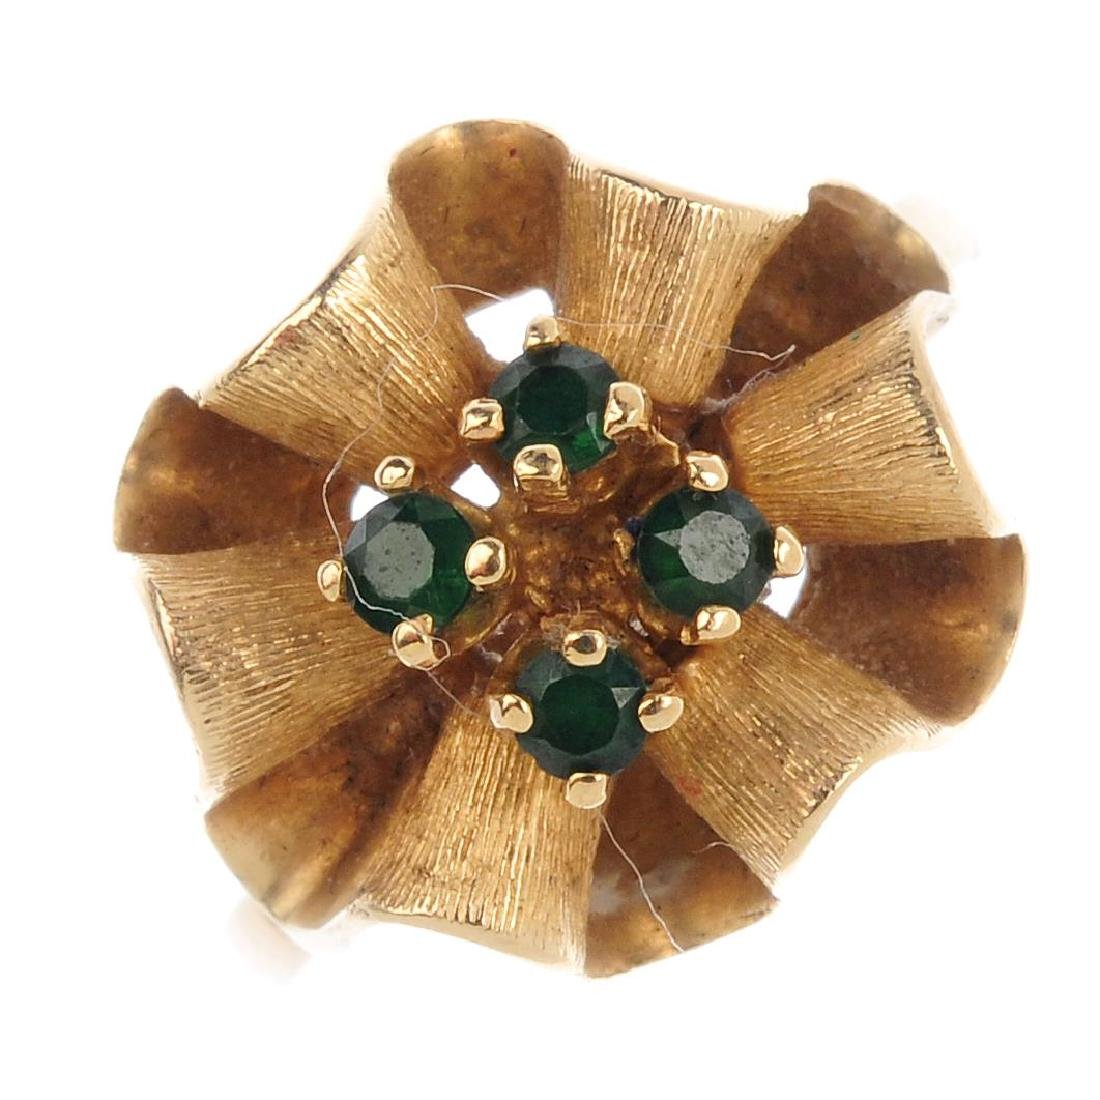 A soudé emerald dress ring. The four circular-shape